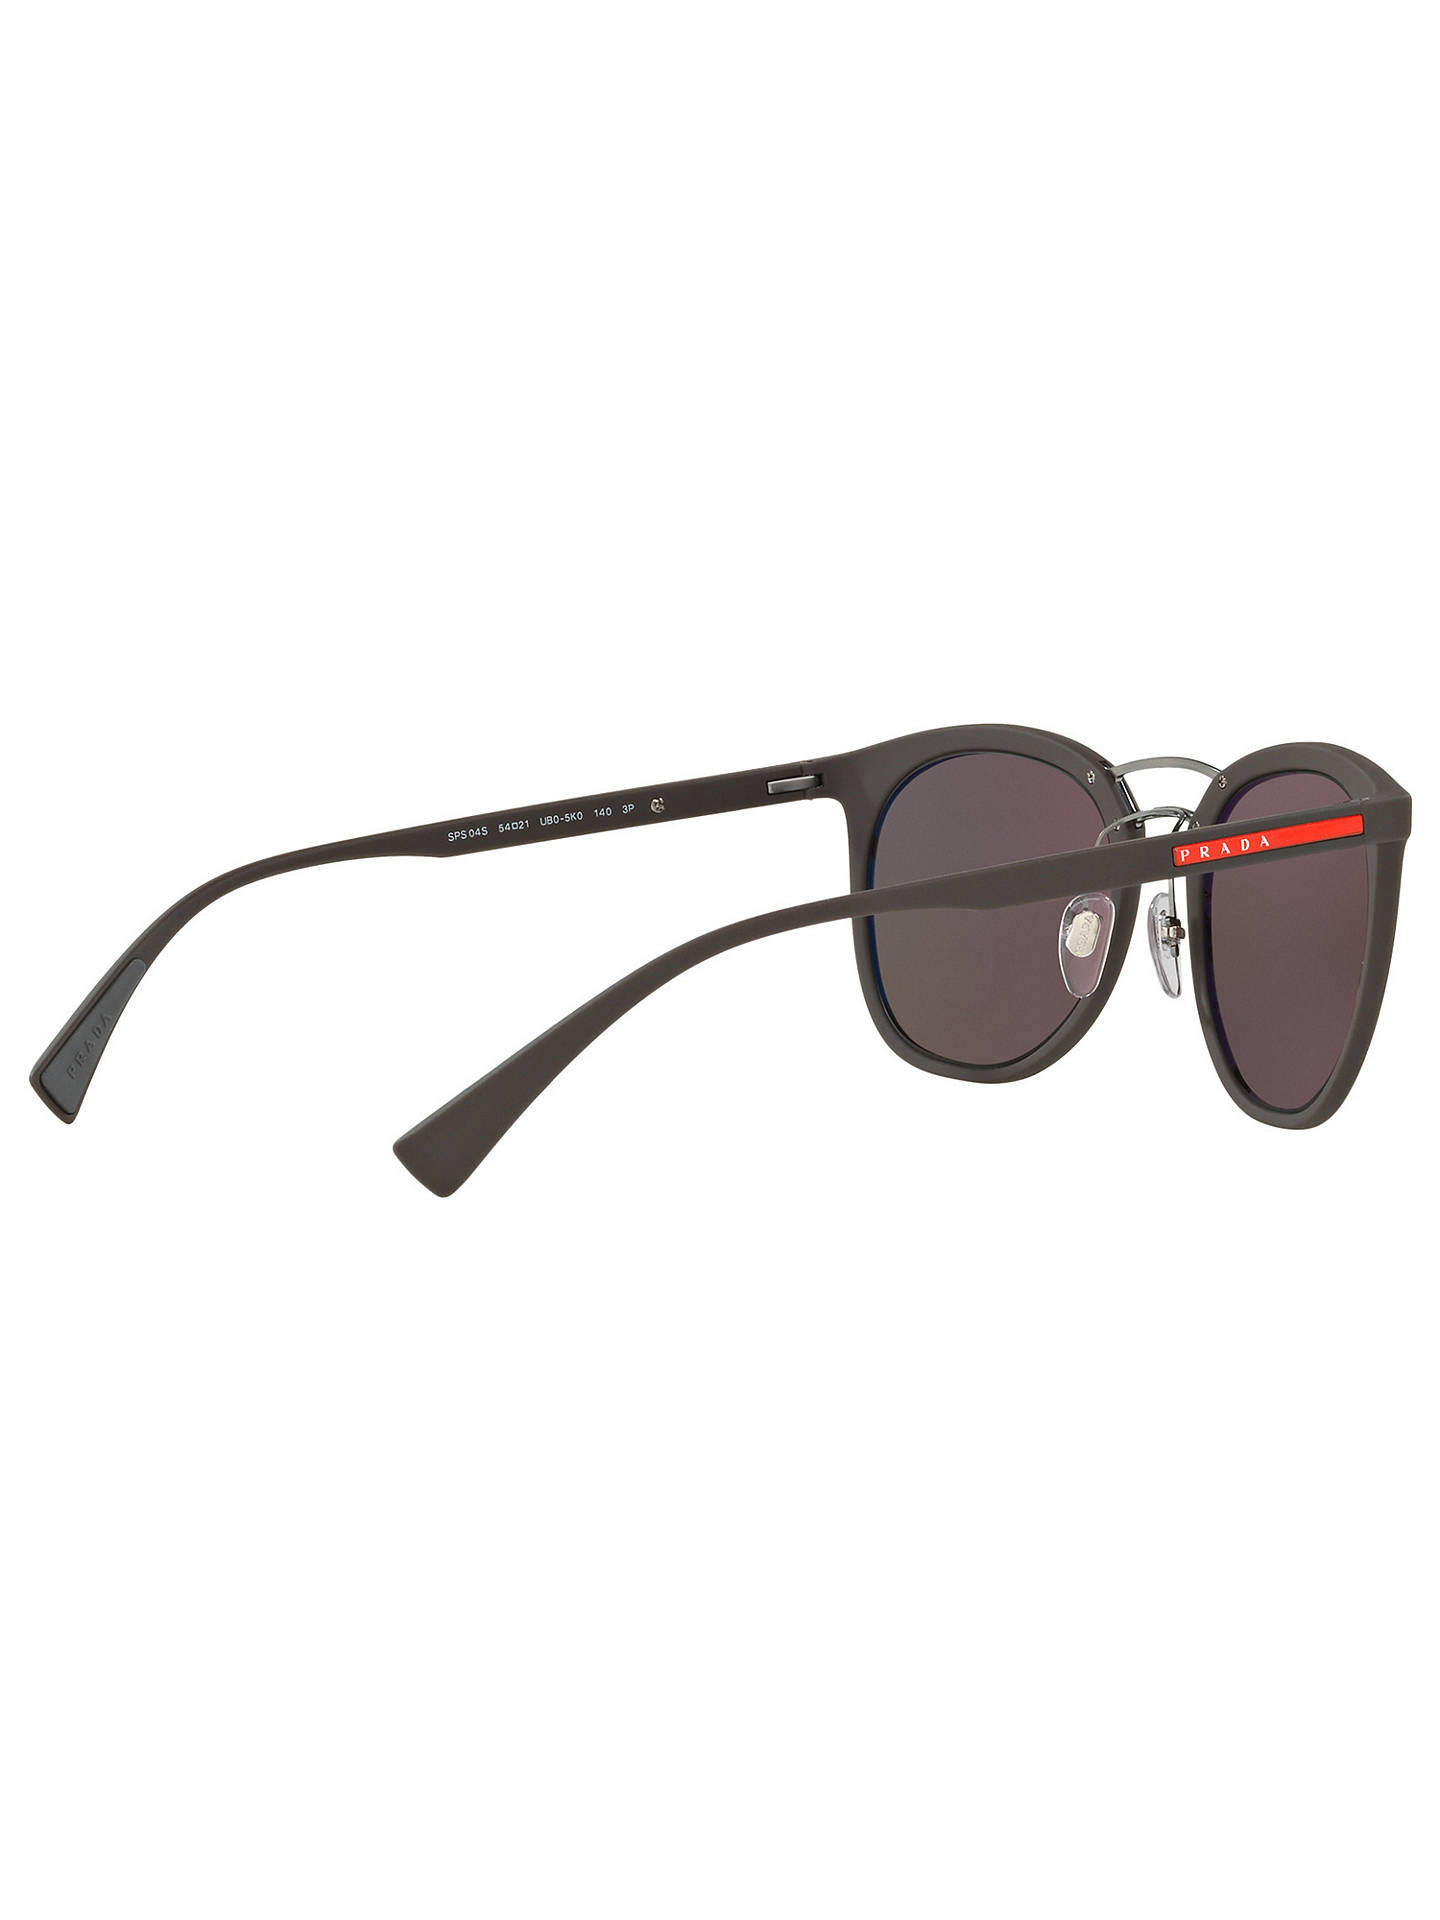 941b898f7e2b ... Buy Prada Linea Rossa PS 04SS Polarised Oval Sunglasses